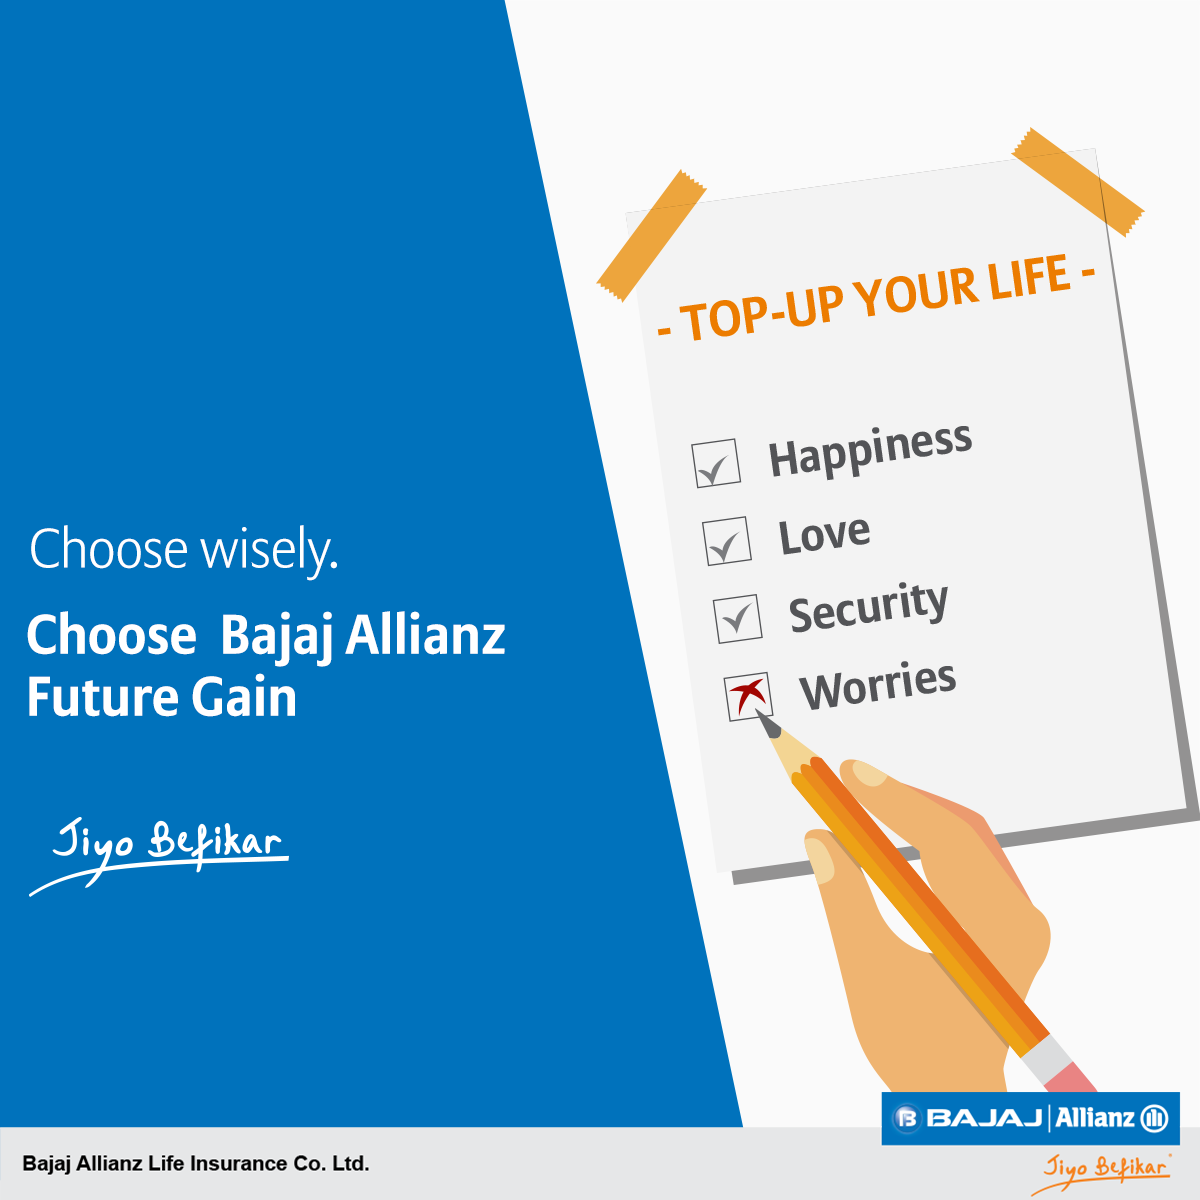 What you save today may not be enough for tomorrow. So top-up your savings with Life Insurance. Get the Bajaj Allianz Life Insurance Future Gain plan to #JiyoBefikar. Visit our website for a worry-free future.